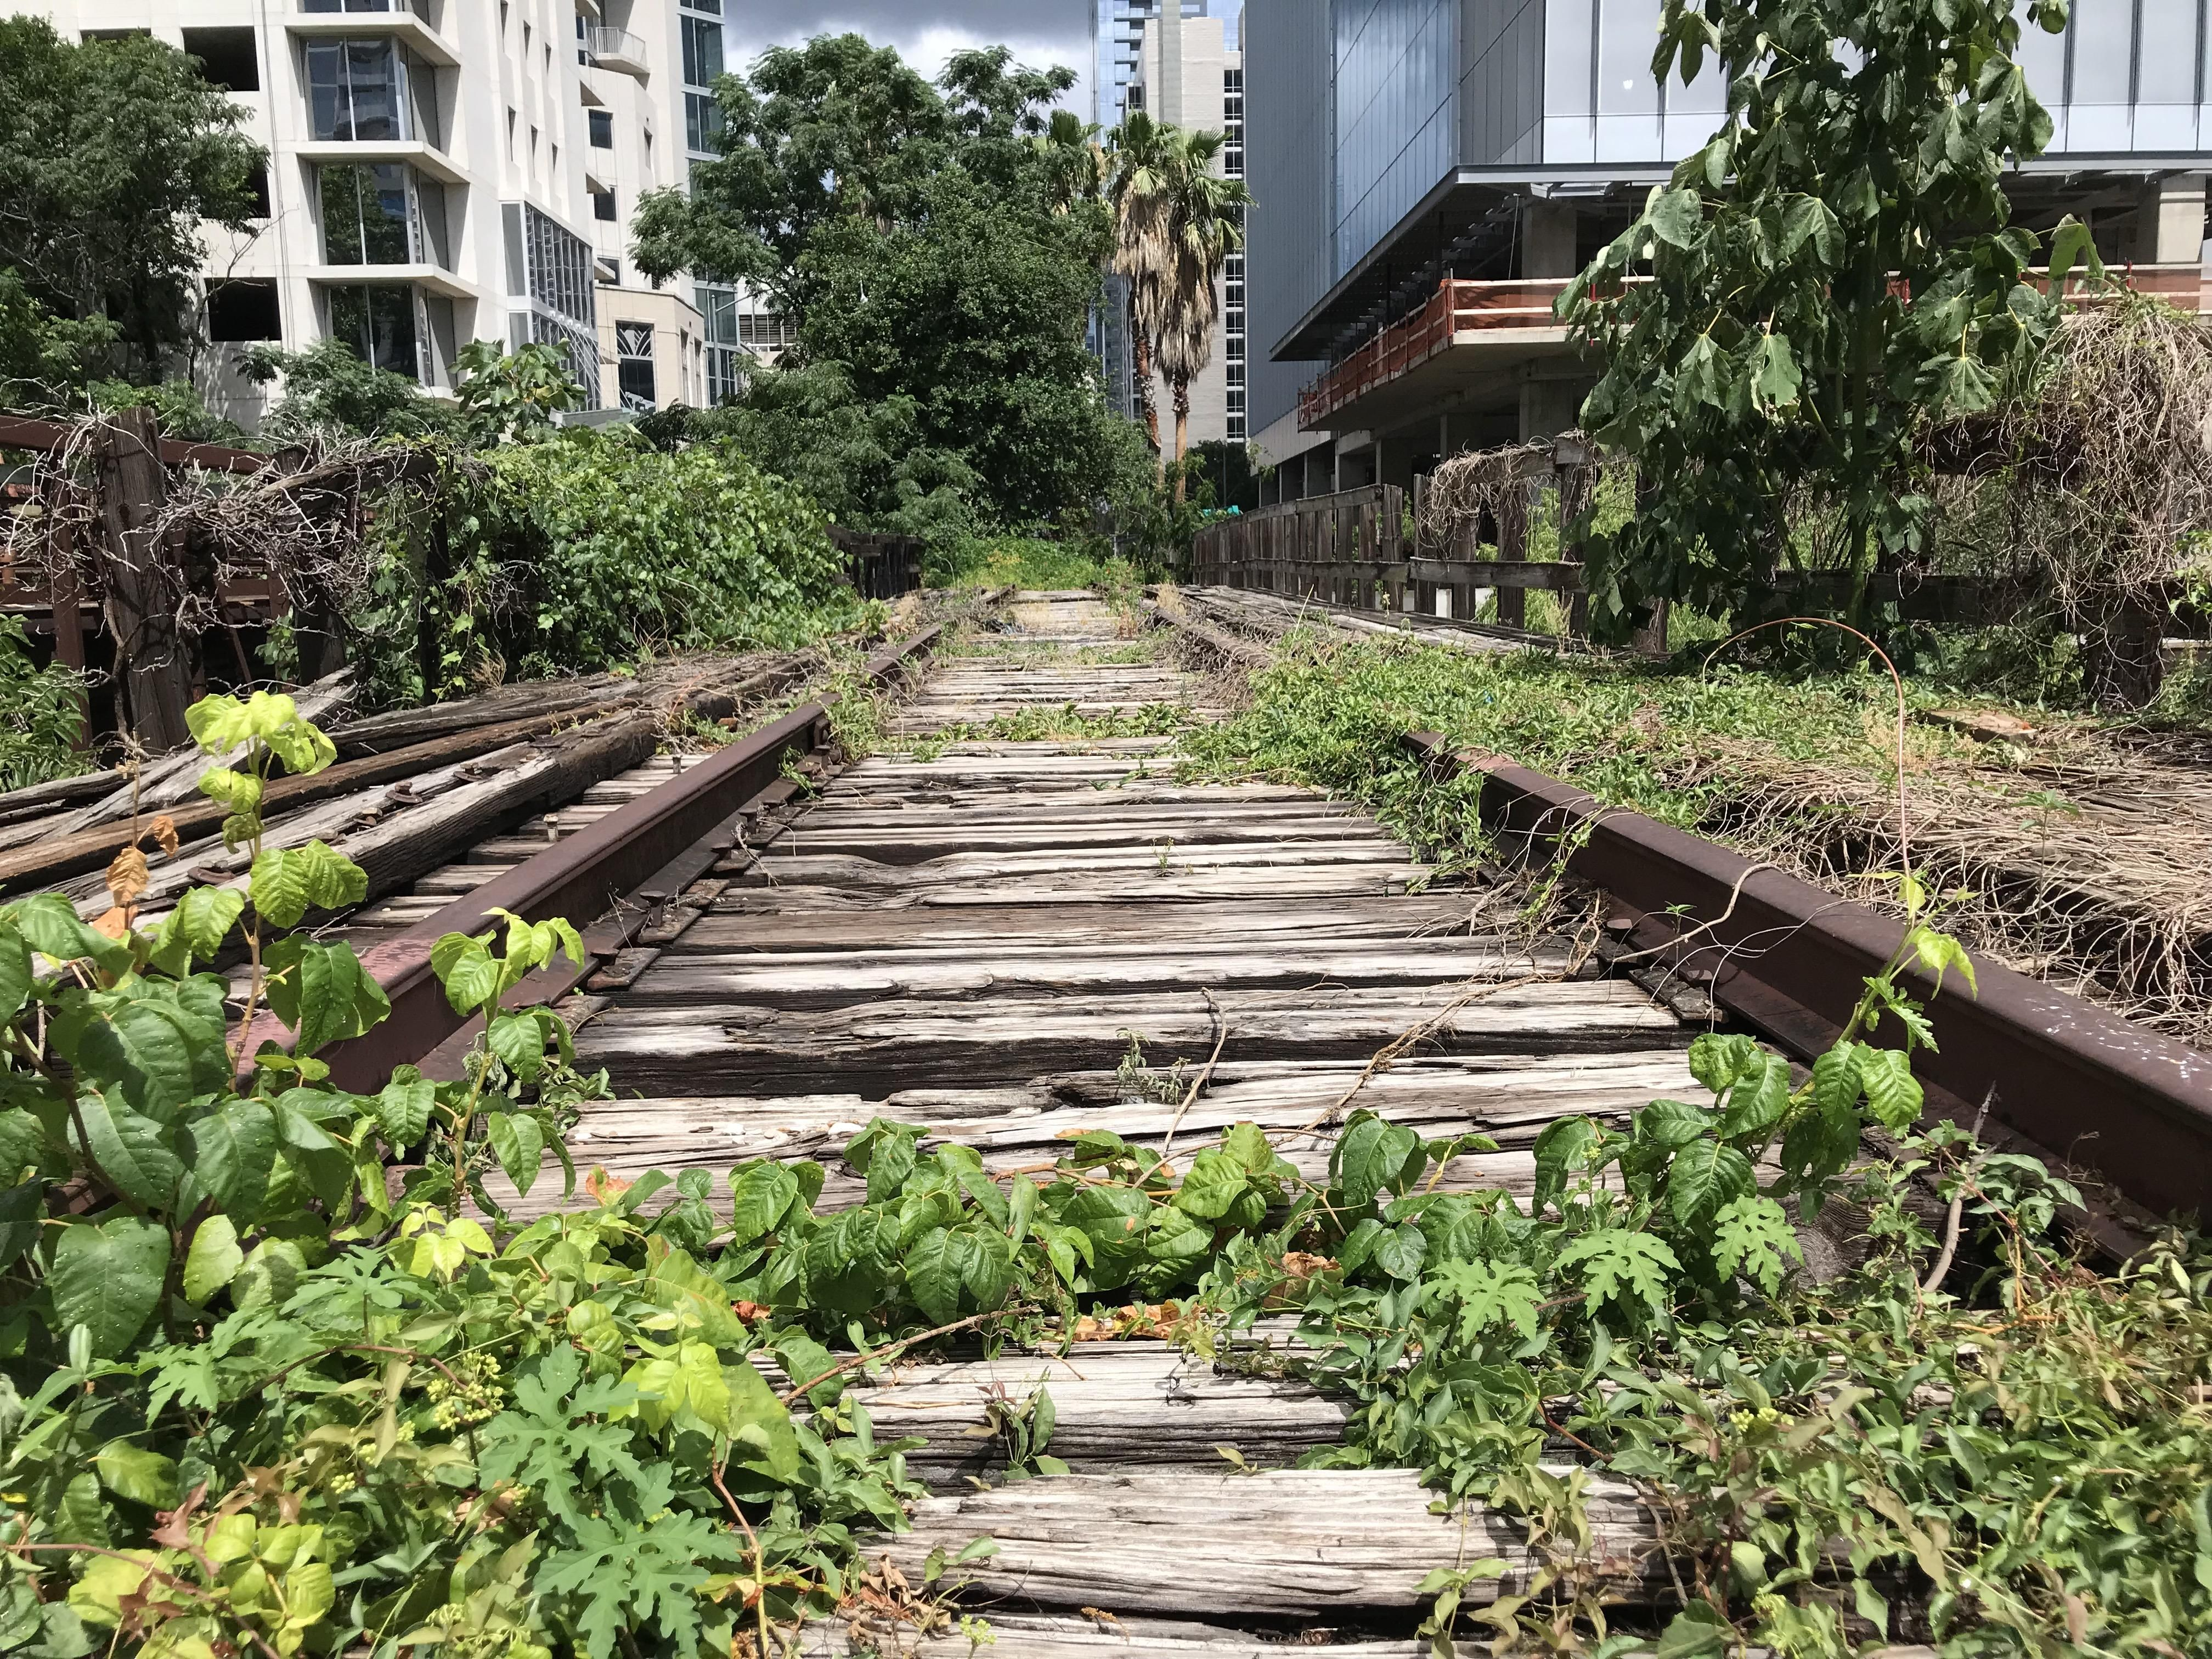 Abandoned Railroad Found In Downtown Austin